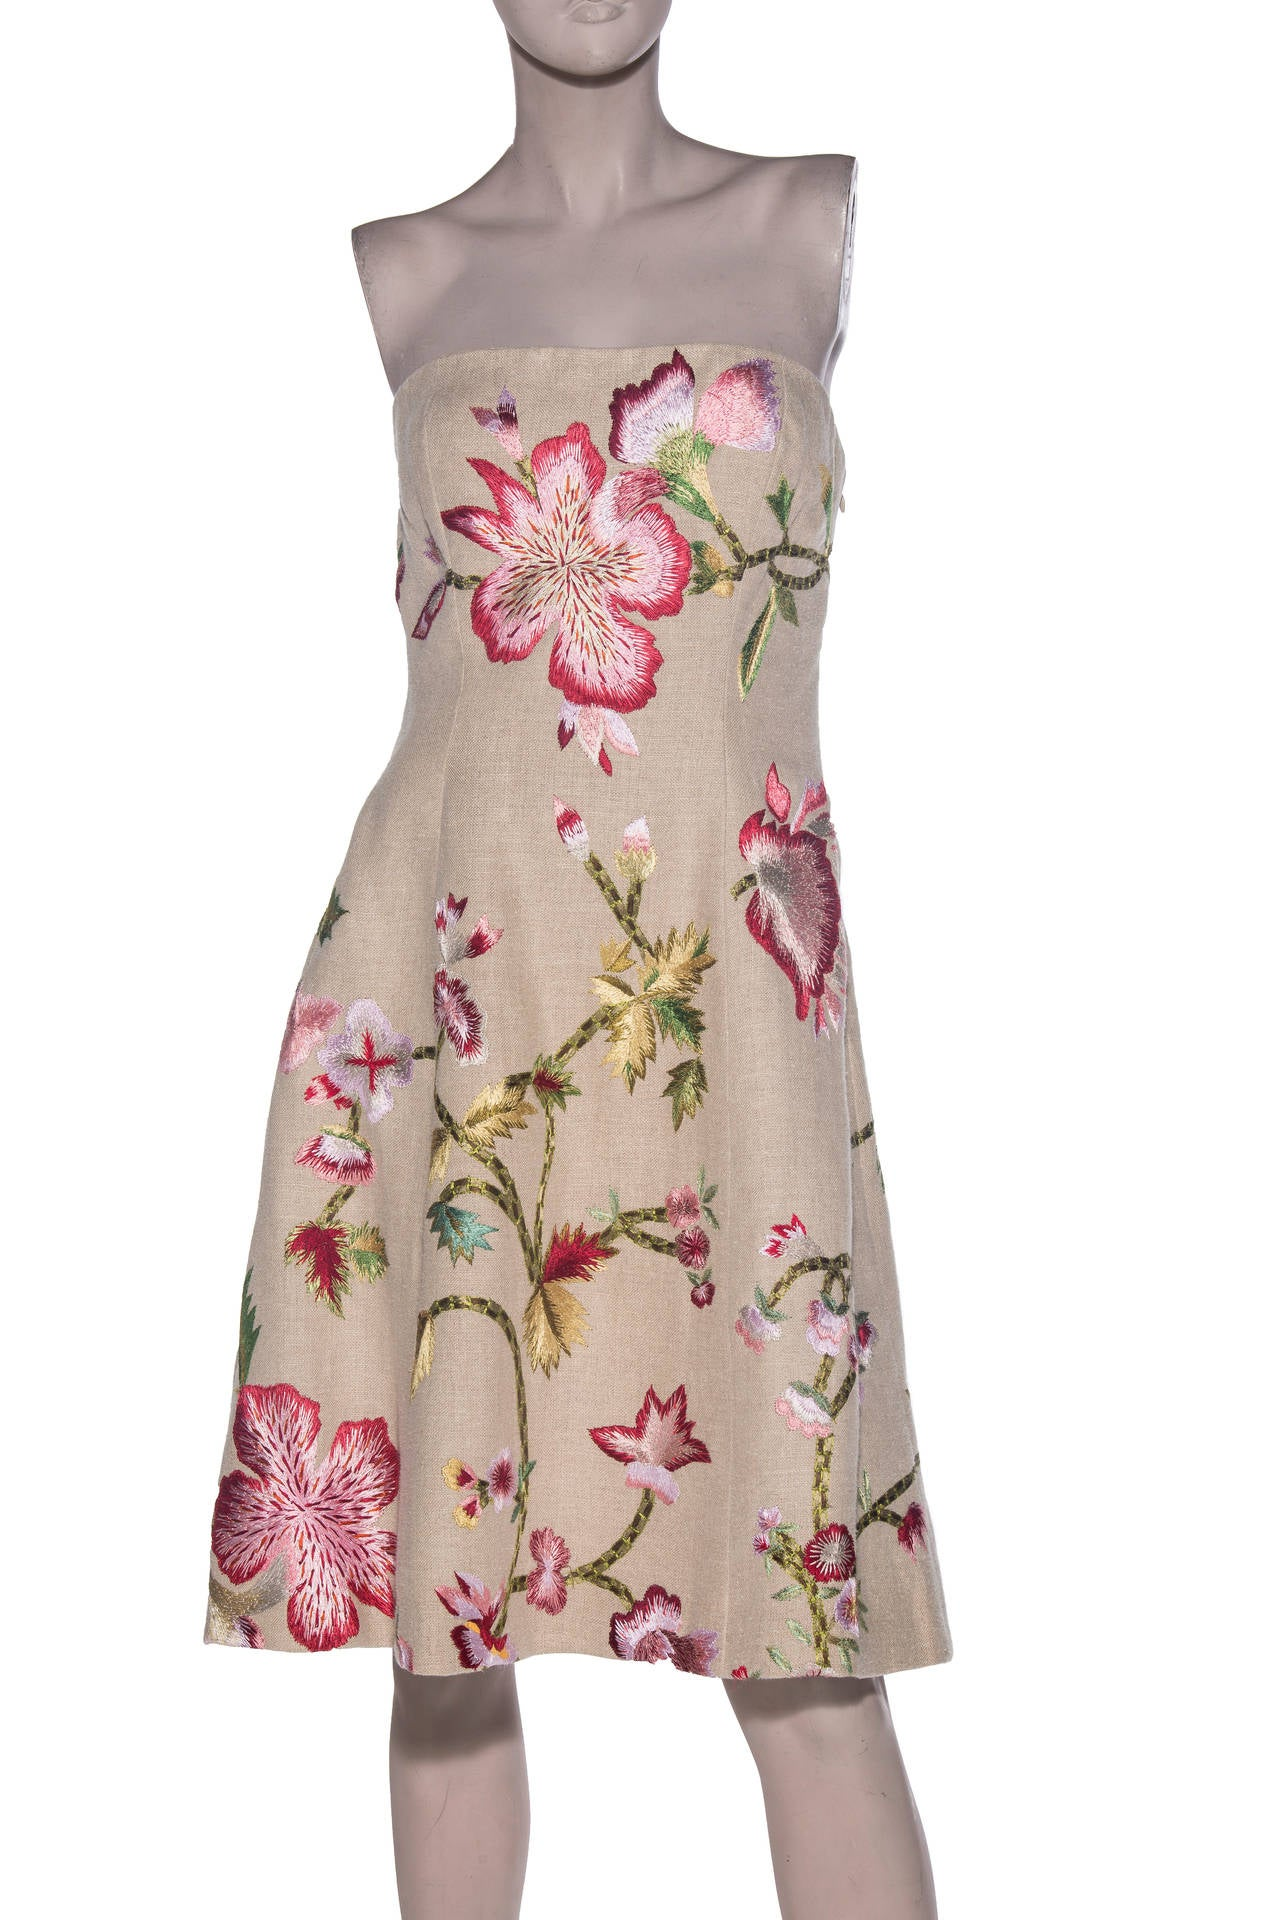 Oscar De la Renta, circa 1990s linen and embroidered strapless dress,built in brasiere, side zip and fully lined in silk.